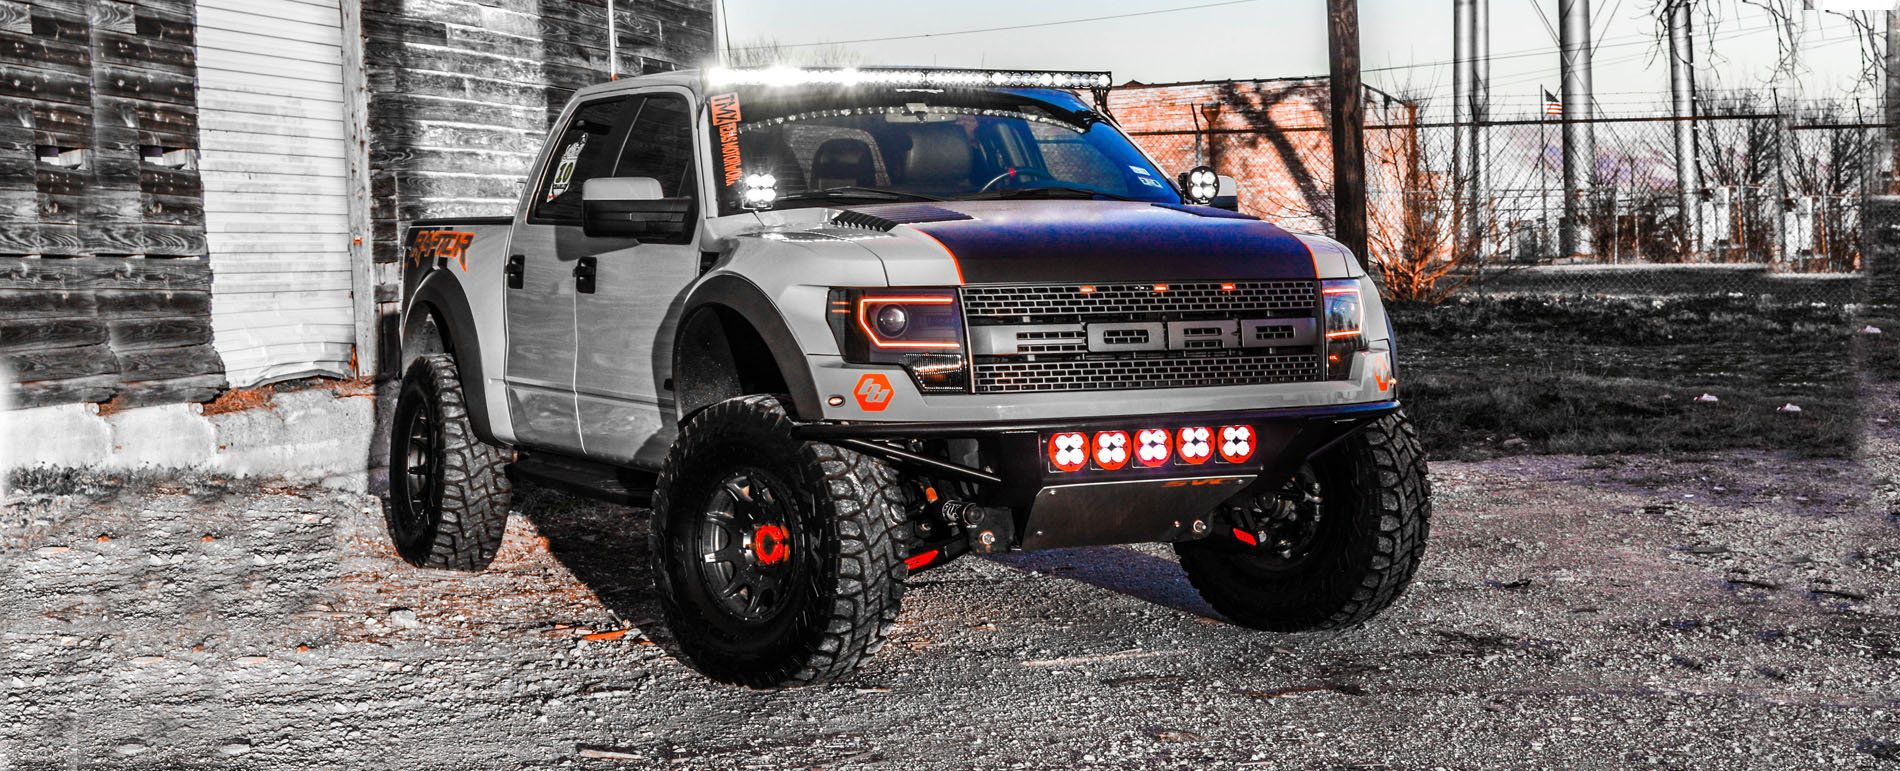 ford f150 raptor tuning - Recherche Google | Ford f150 Raptor